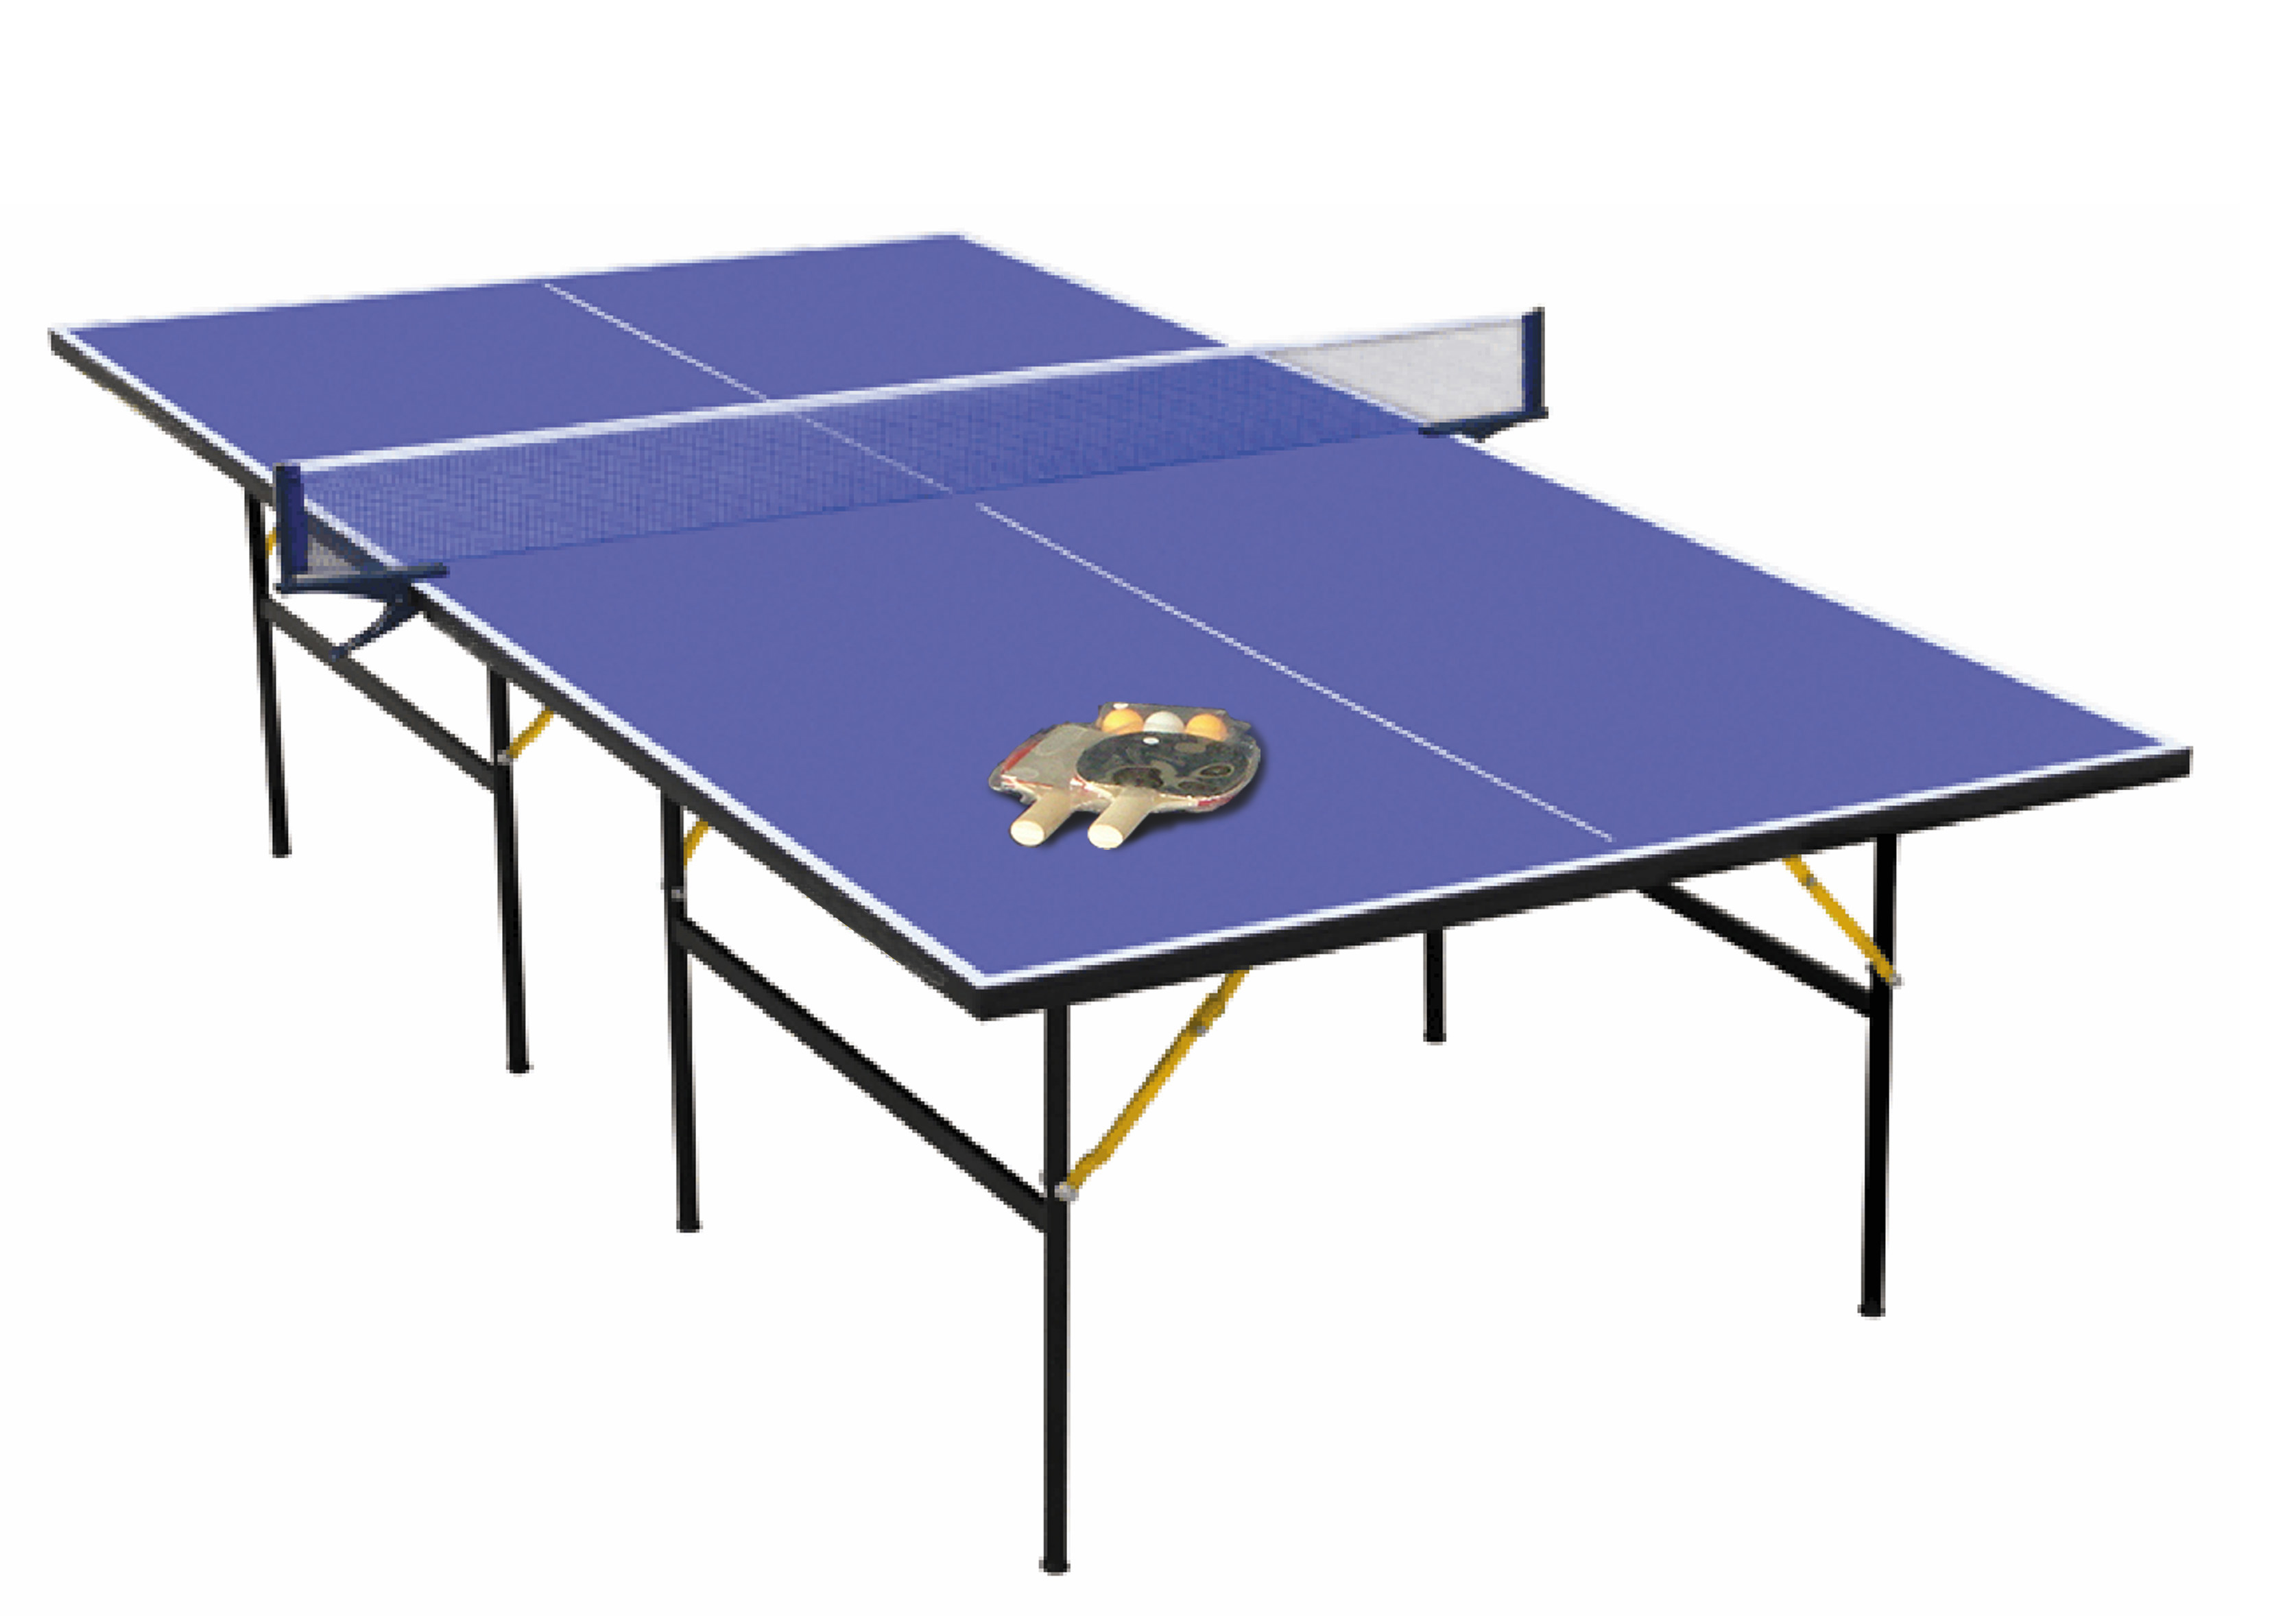 Charles bentley full size 9ft folding table tennis indoor - Full size table tennis table dimensions ...